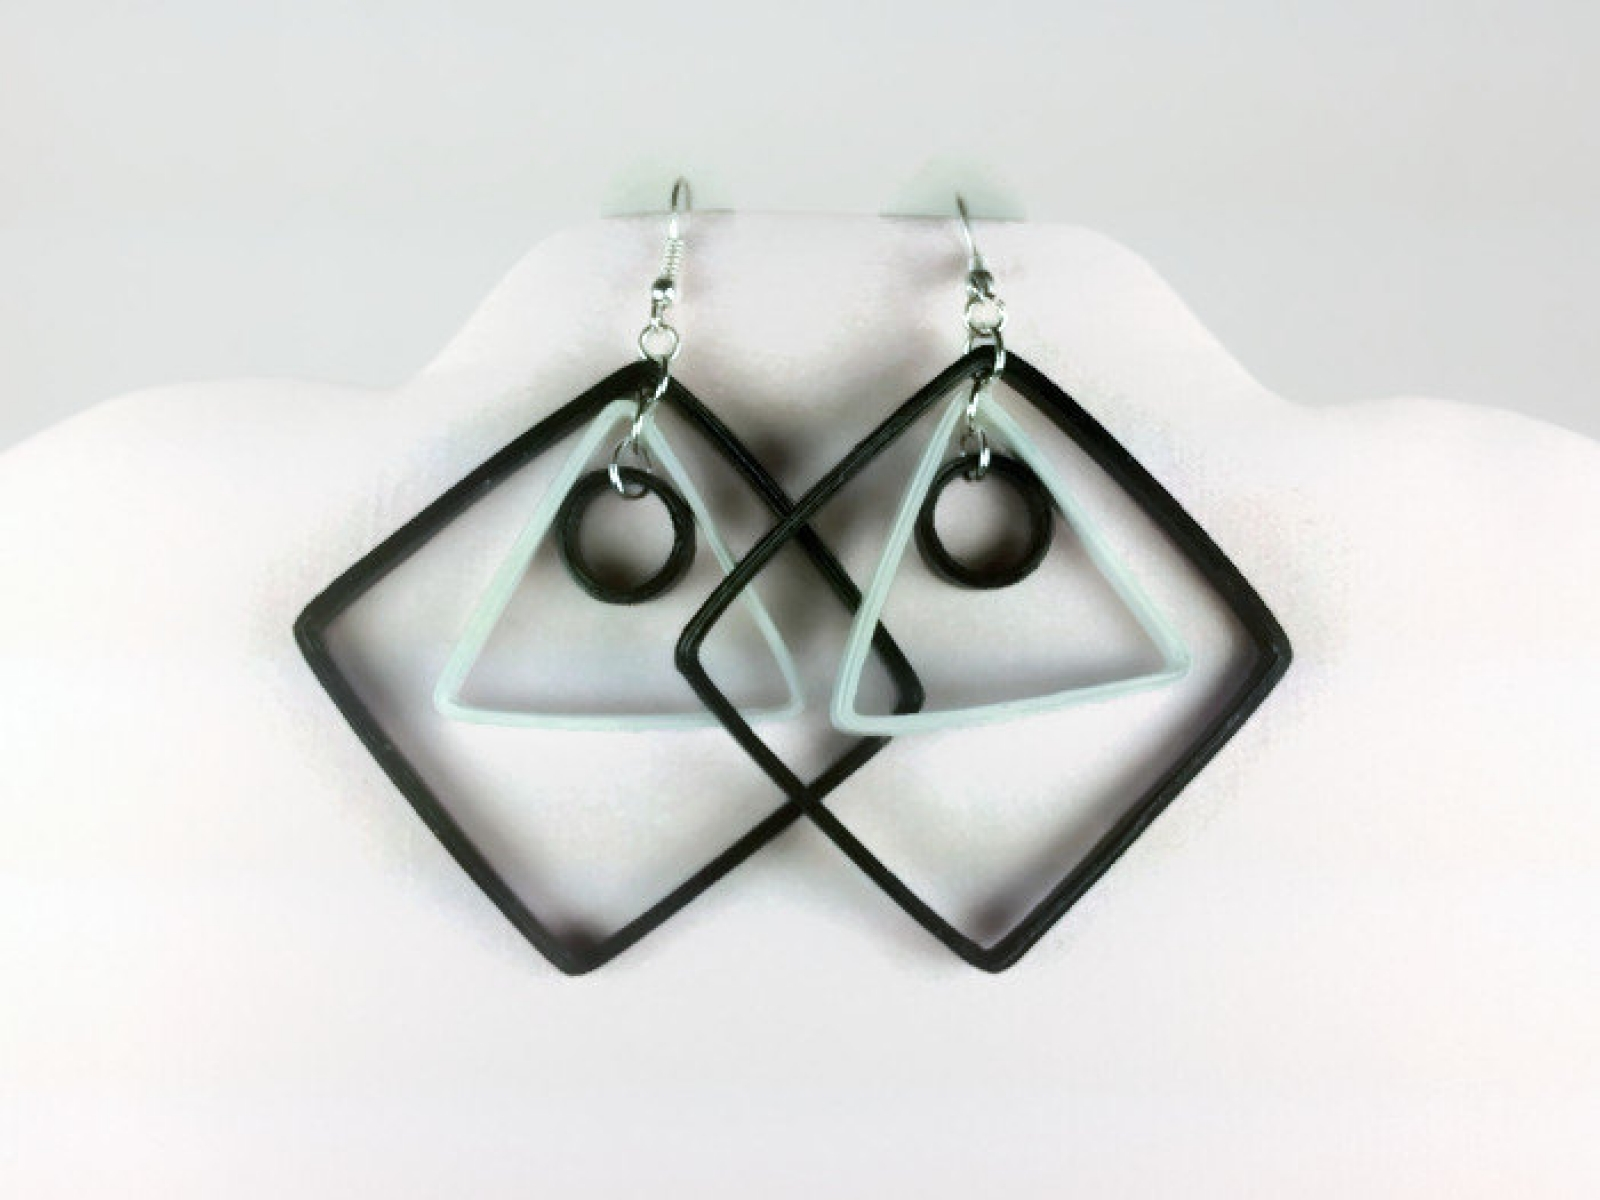 chloe copy peak geometric earrings sarah